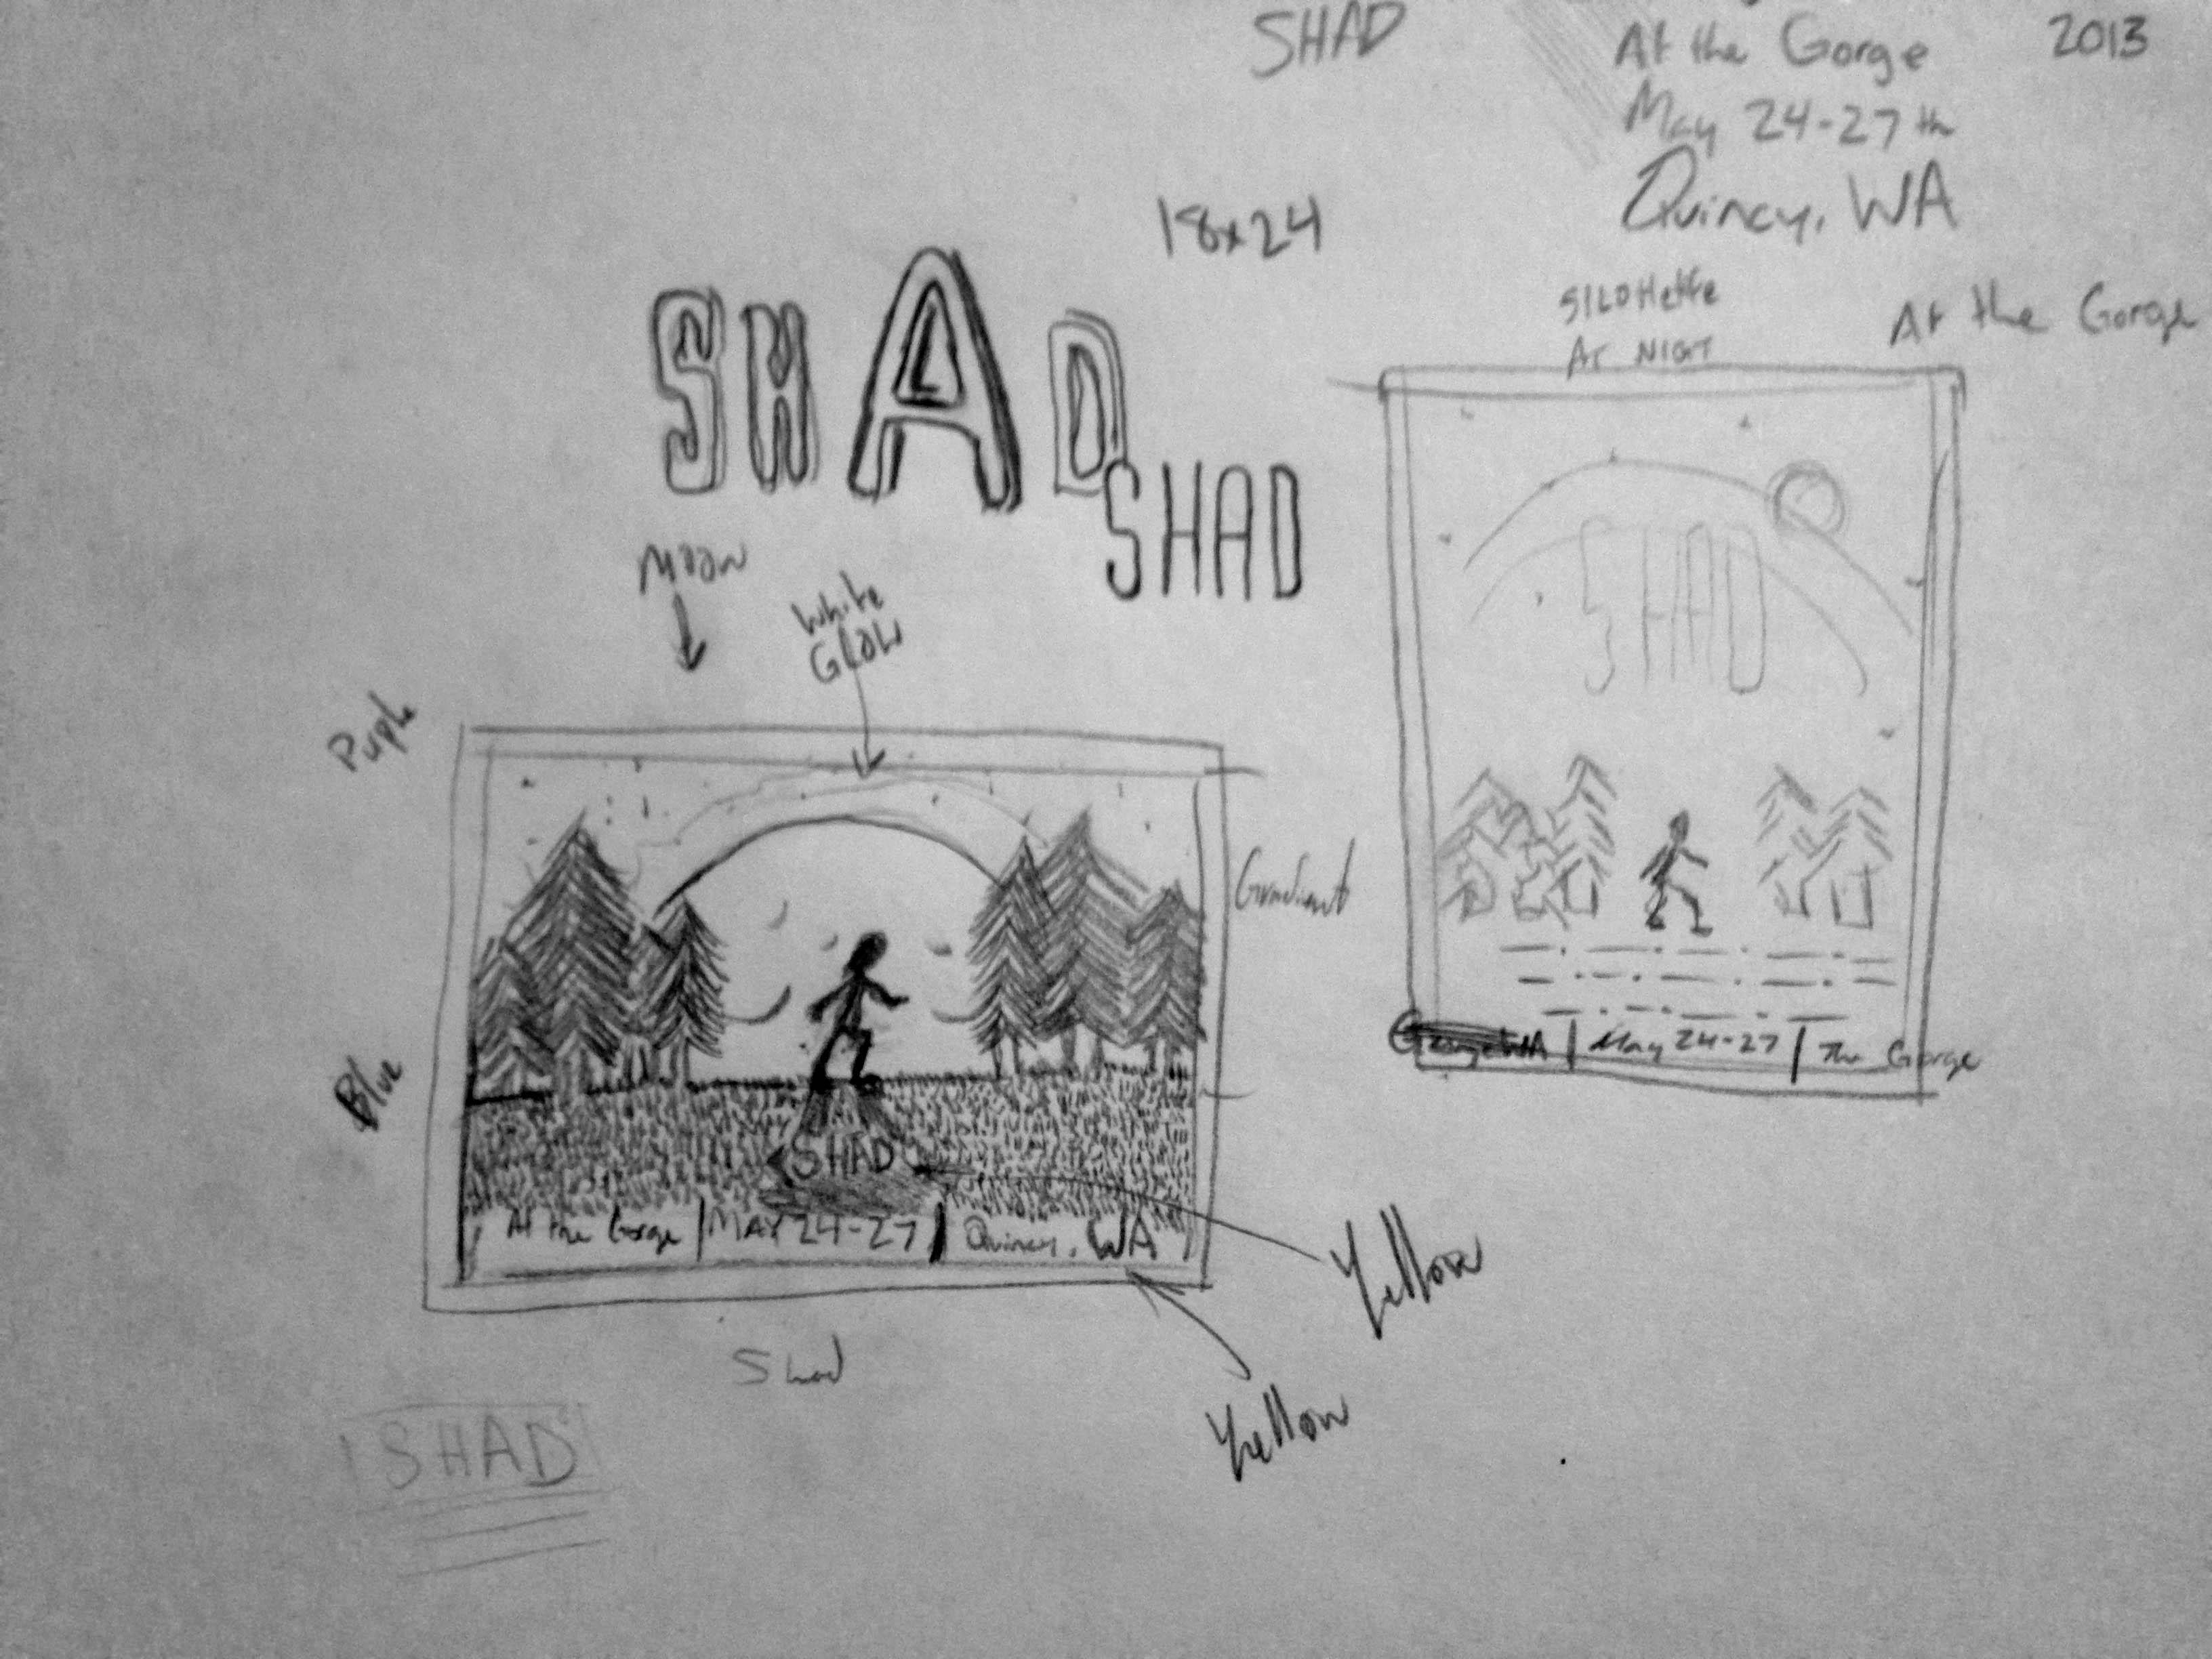 Shad - image 5 - student project